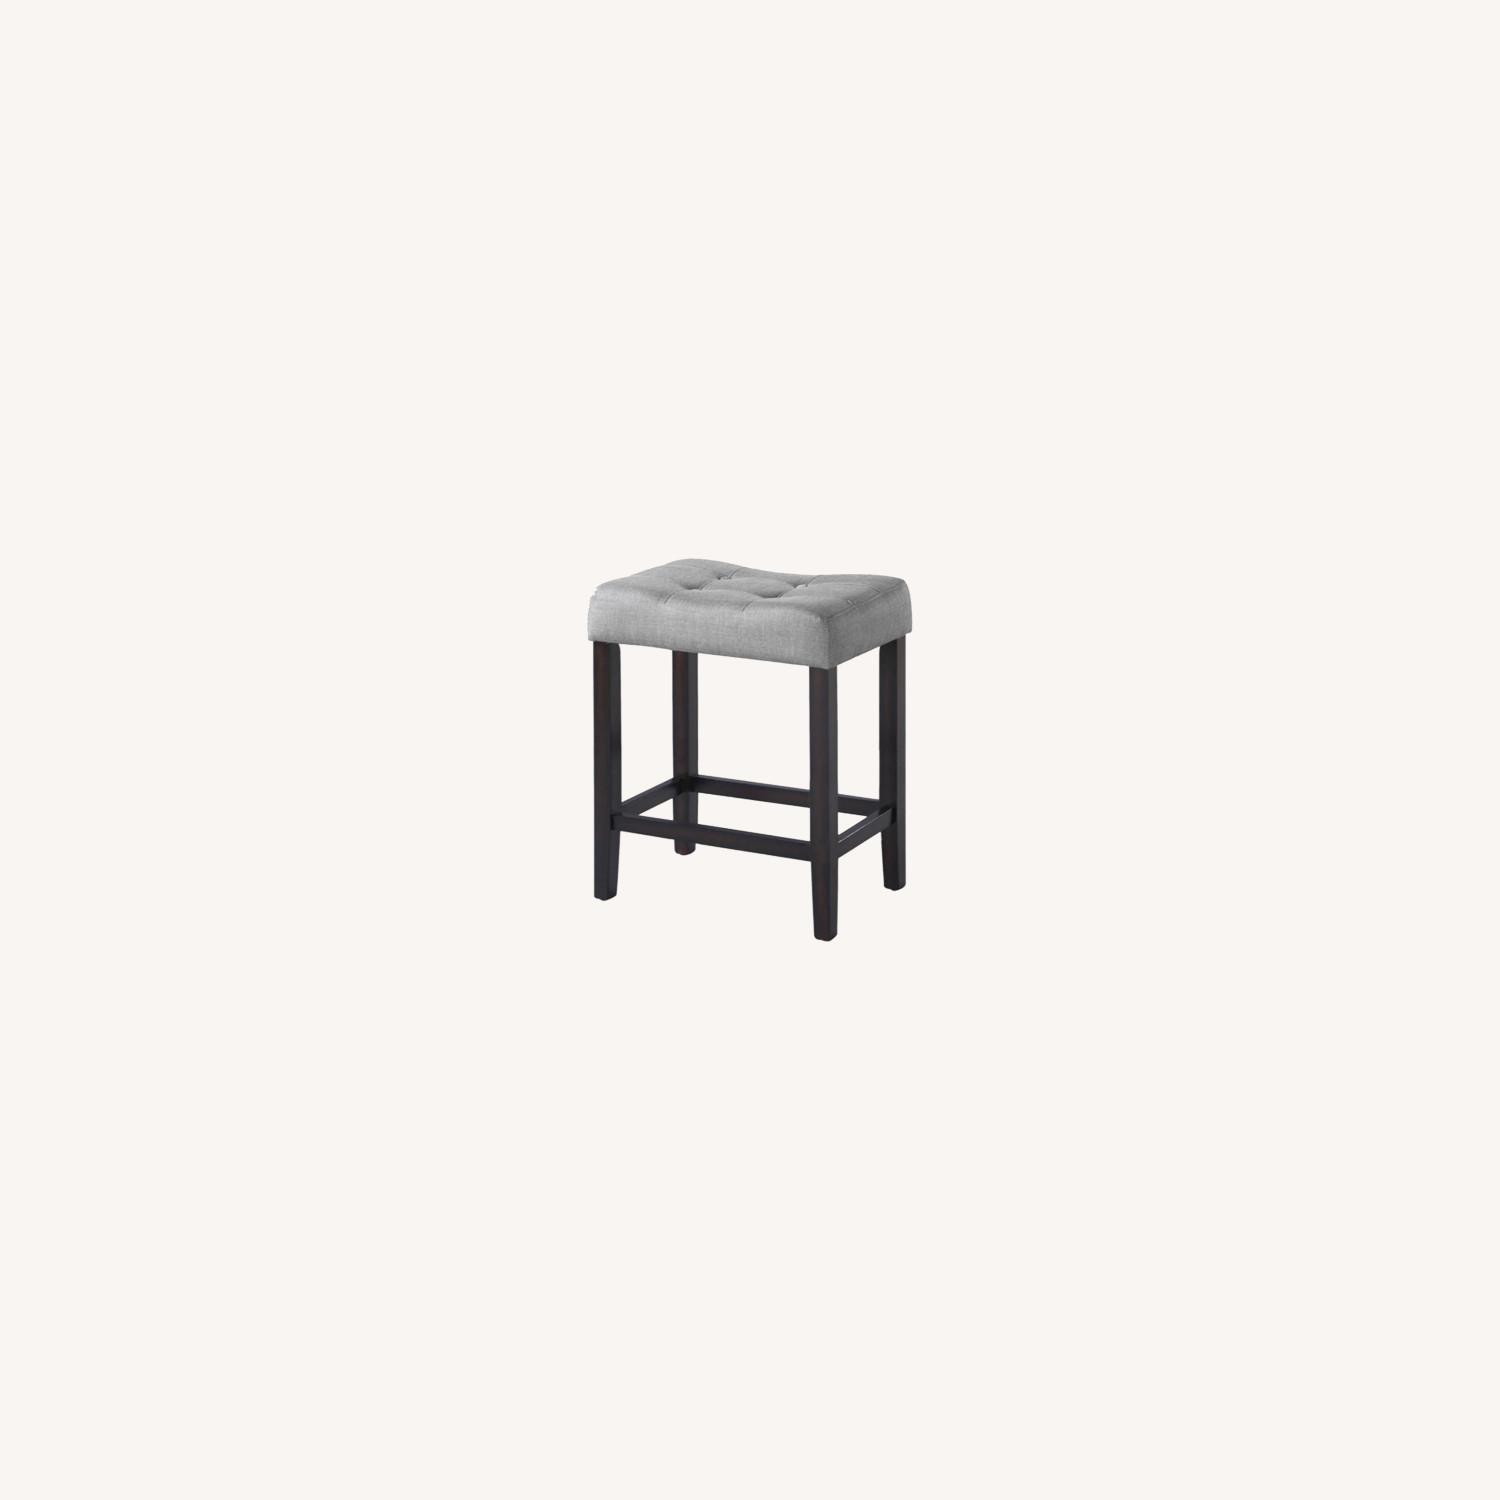 Counter Height Stool In Grey Fabric Tufted Seating - image-4